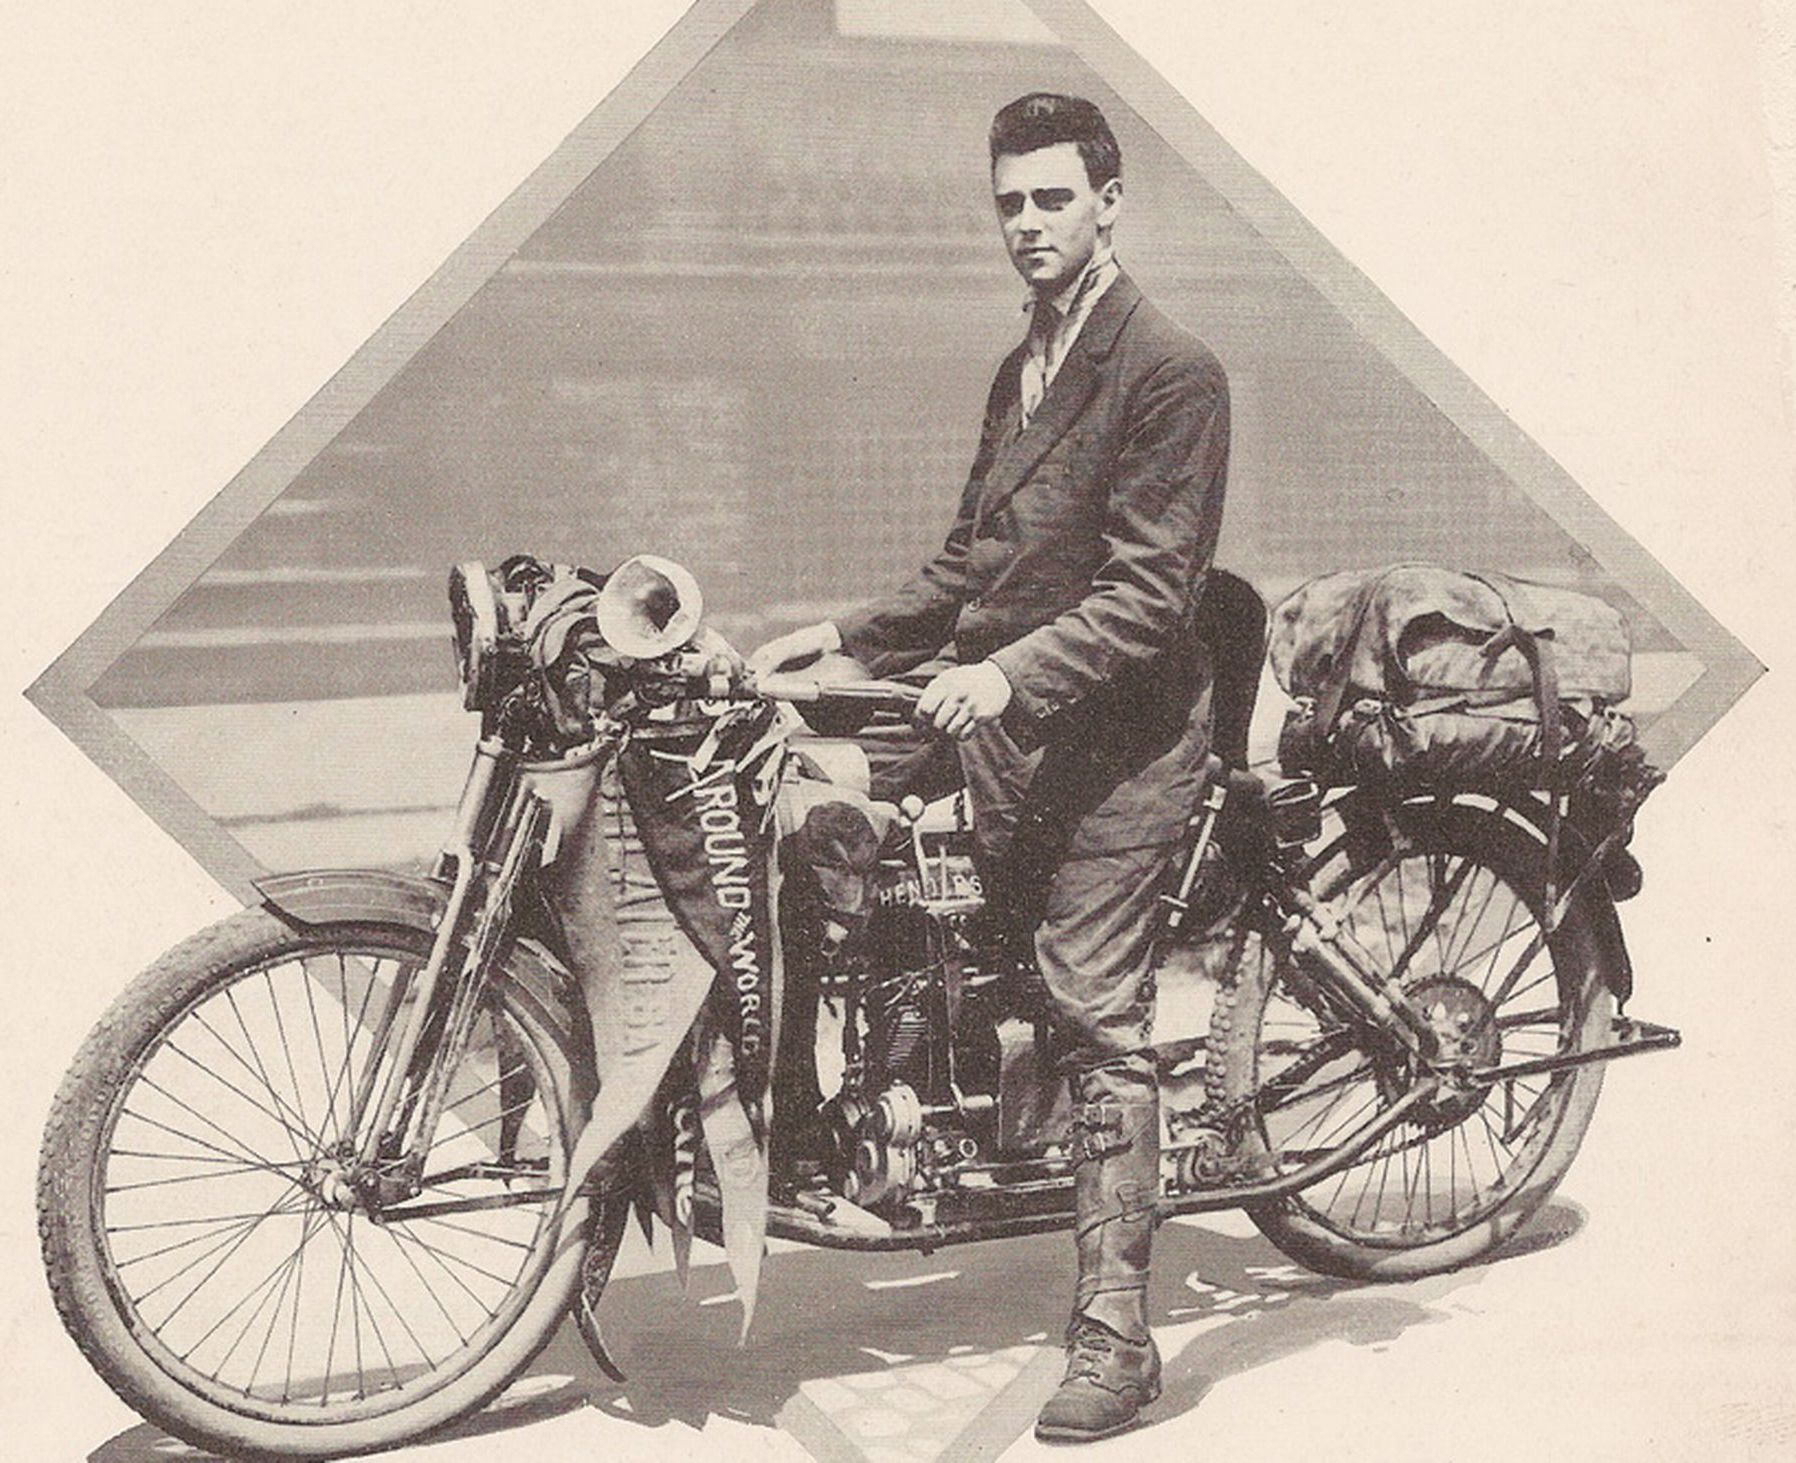 Carl Stearns Clancy on his 1912 Henderson Four at the successful conclusion of his around the world trip. This was the first around the world motorcycle journey ever accomplished. (Picture courtesy Wikipedia).